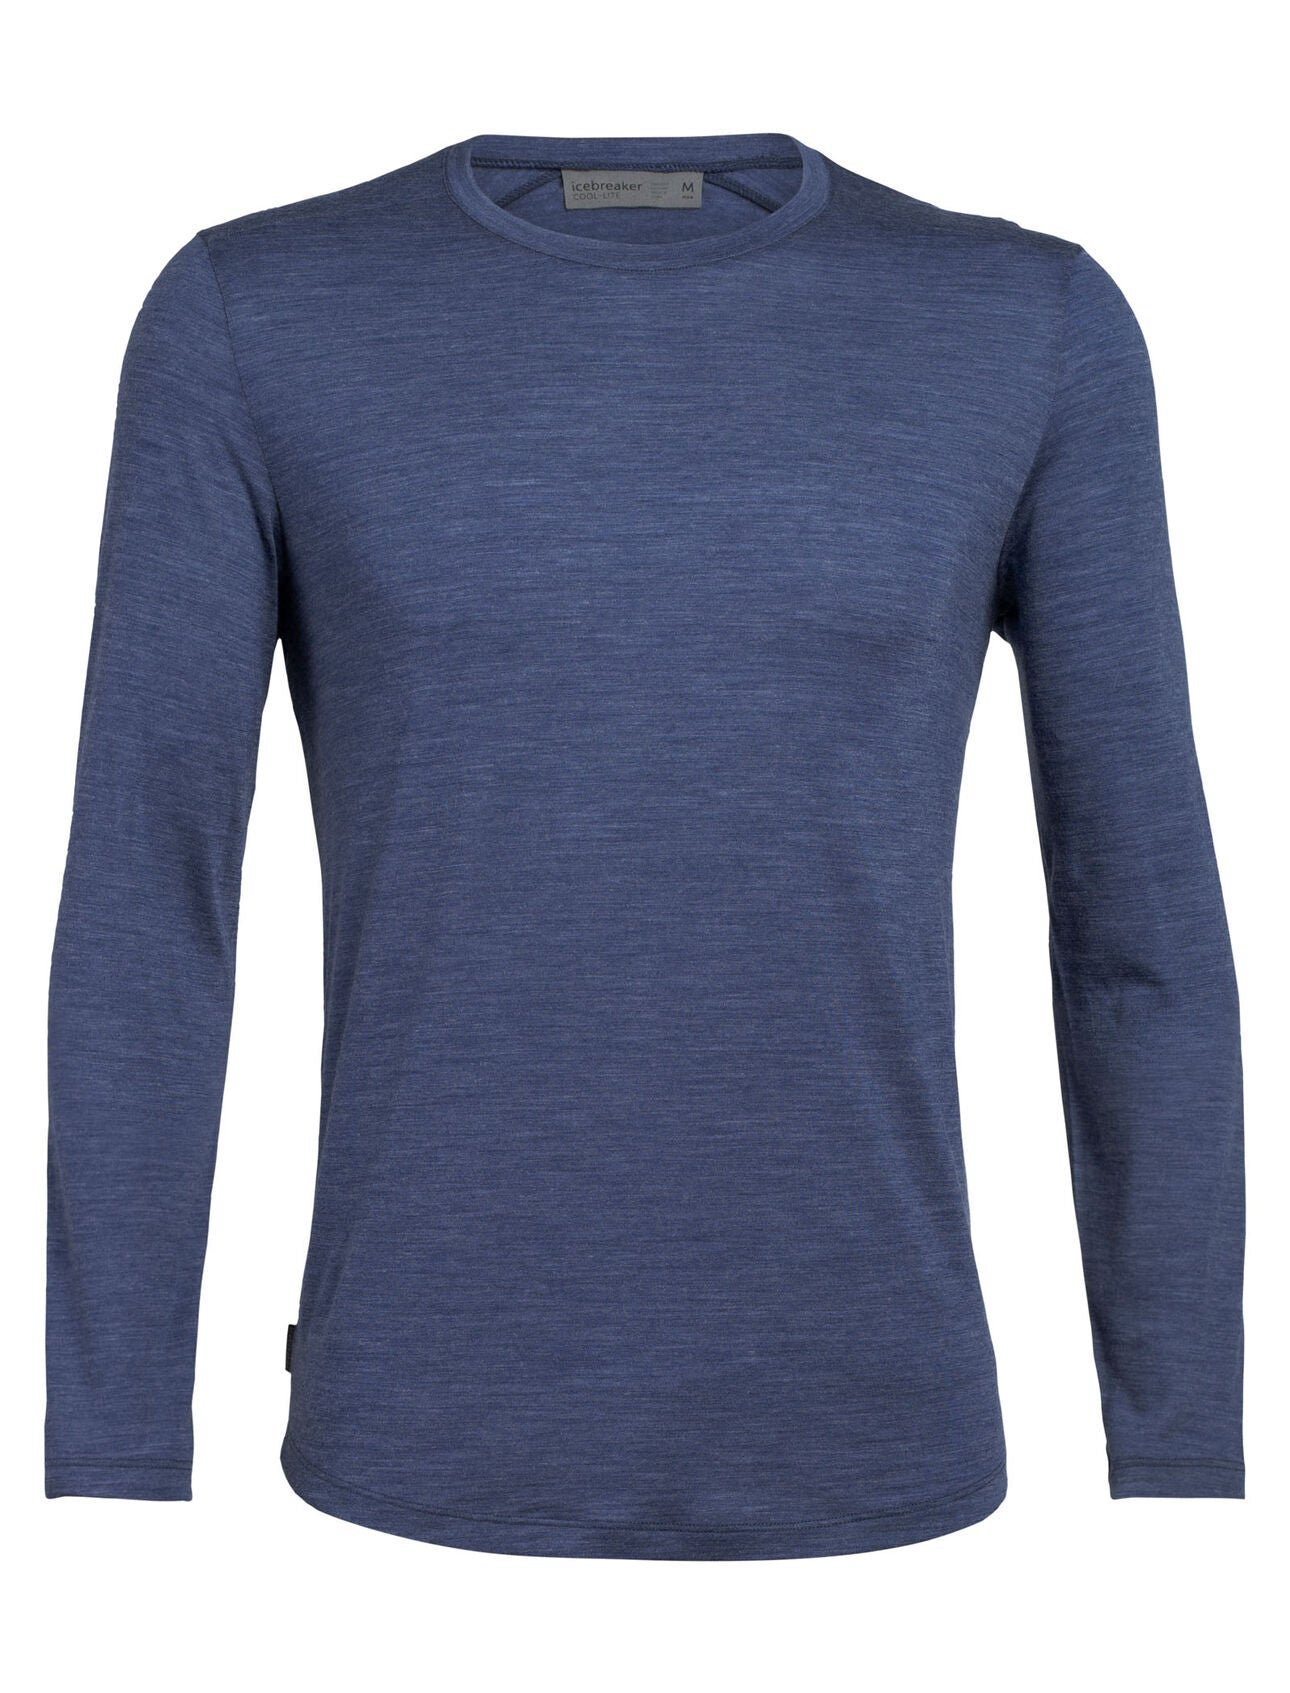 Icebreaker Men's Cool-Lite™ Sphere Lone Sleeve Crew